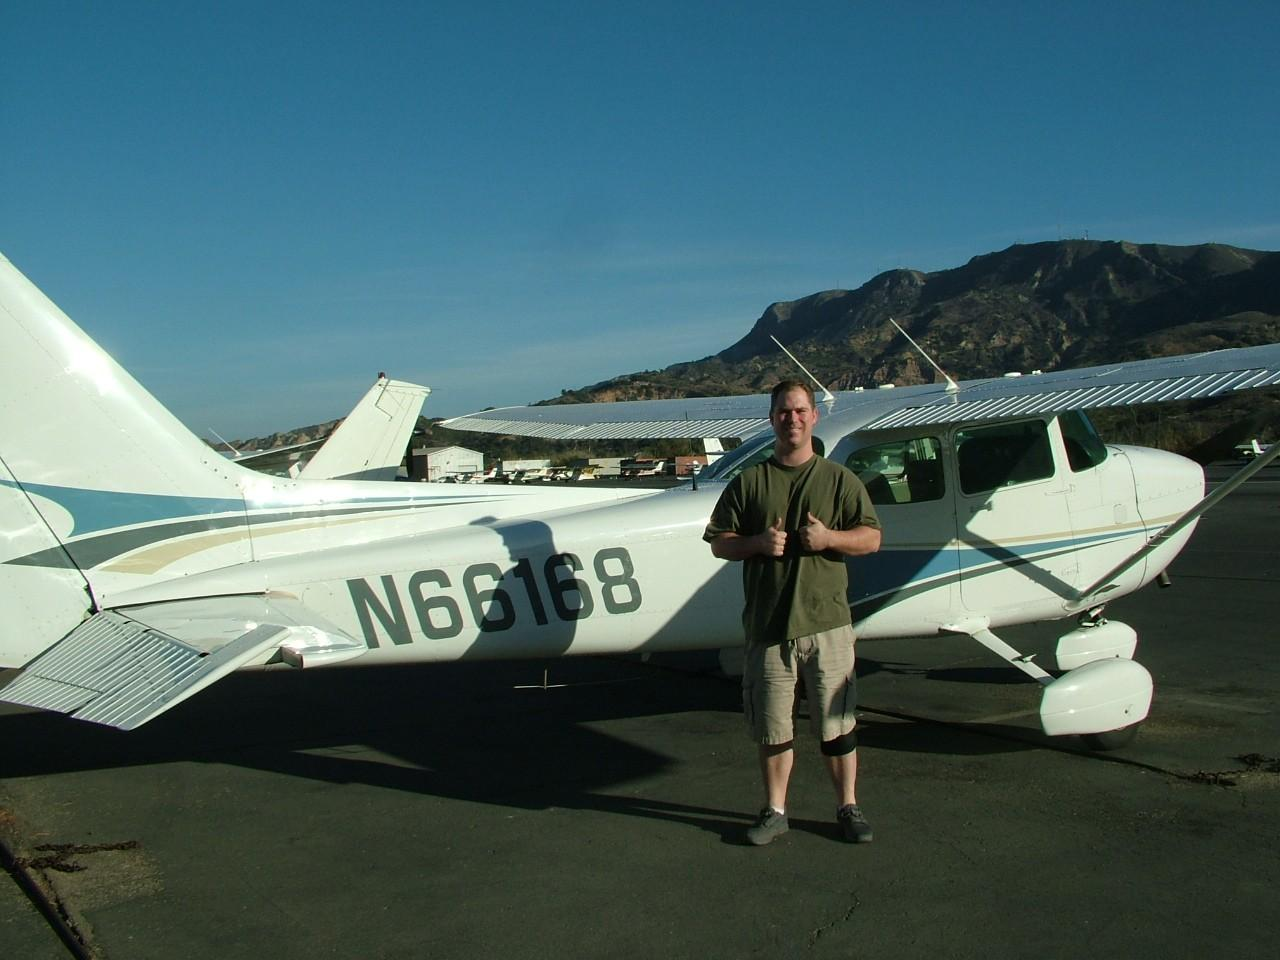 First Solo - Chris Pappas